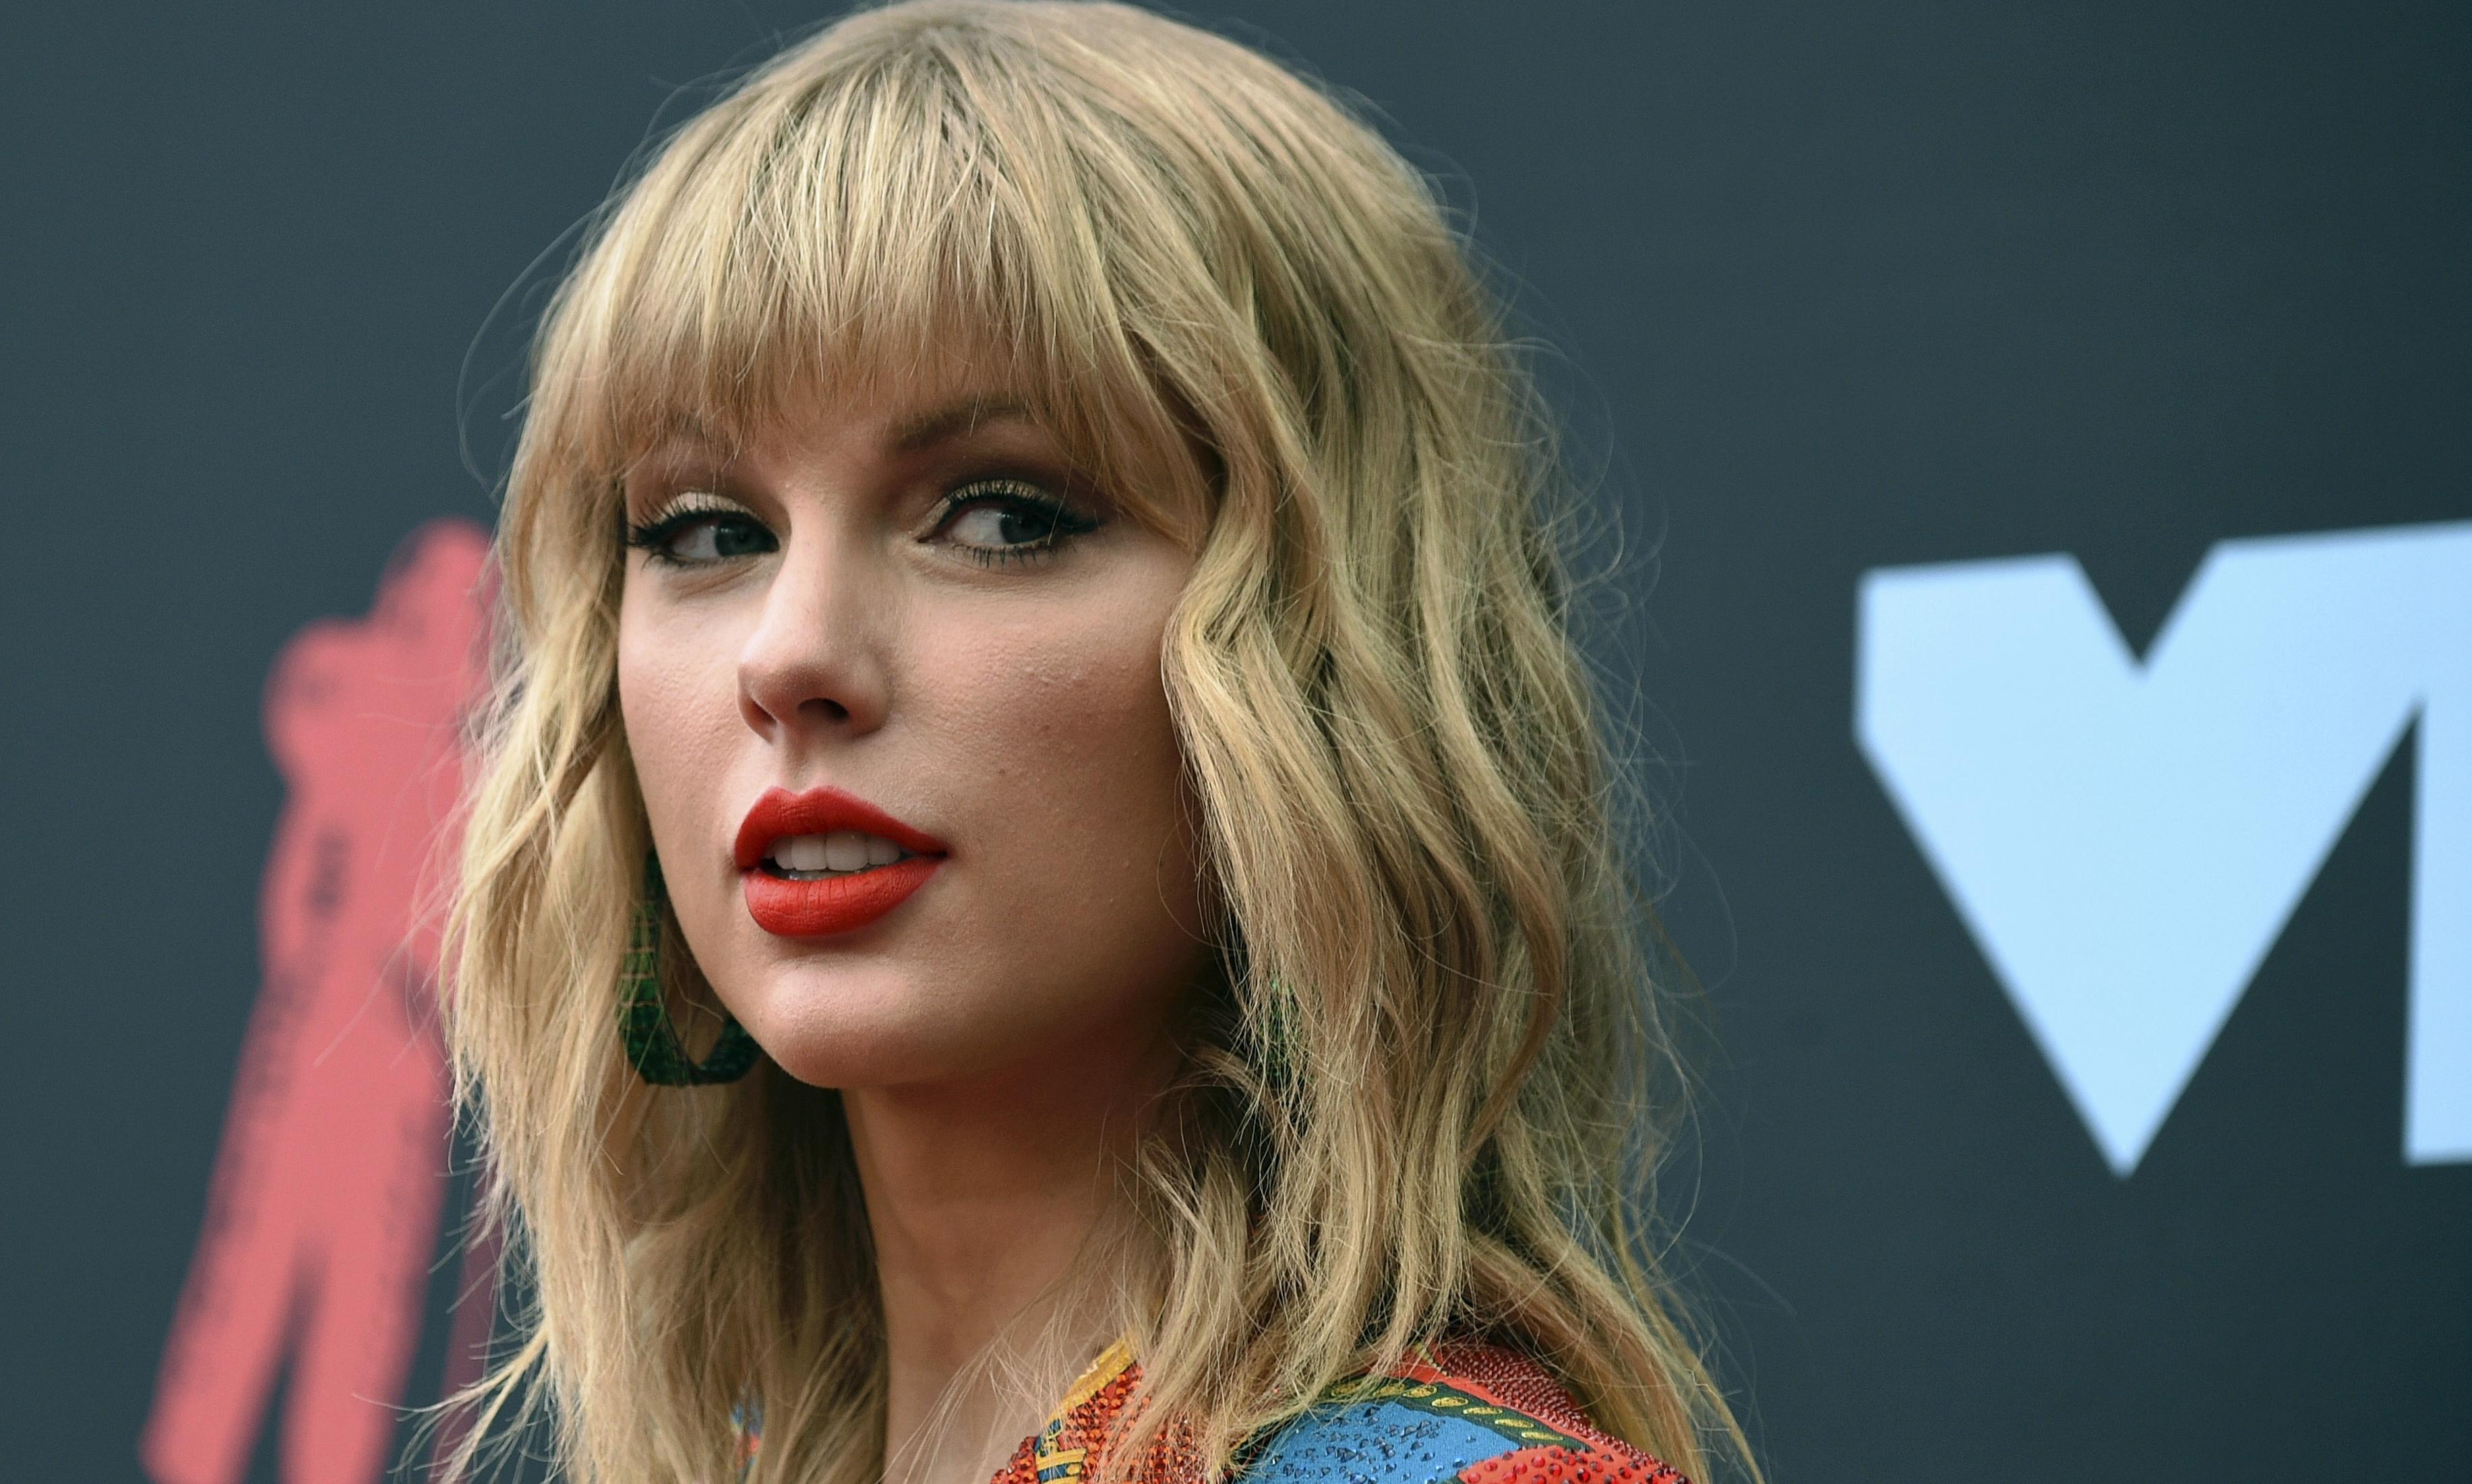 Taylor Swift cancels Melbourne Cup performance after criticism from animal rights groups